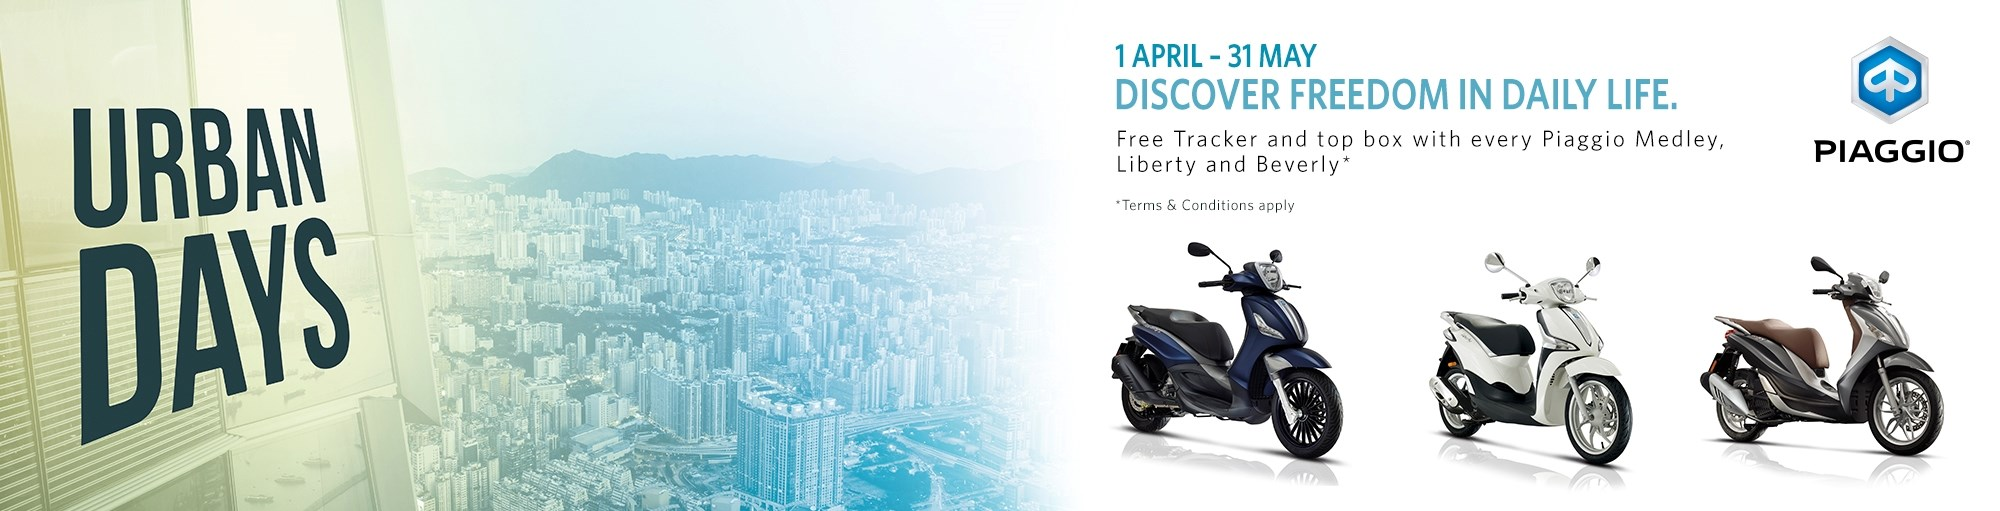 Piaggio Urban Days Accessories Offer